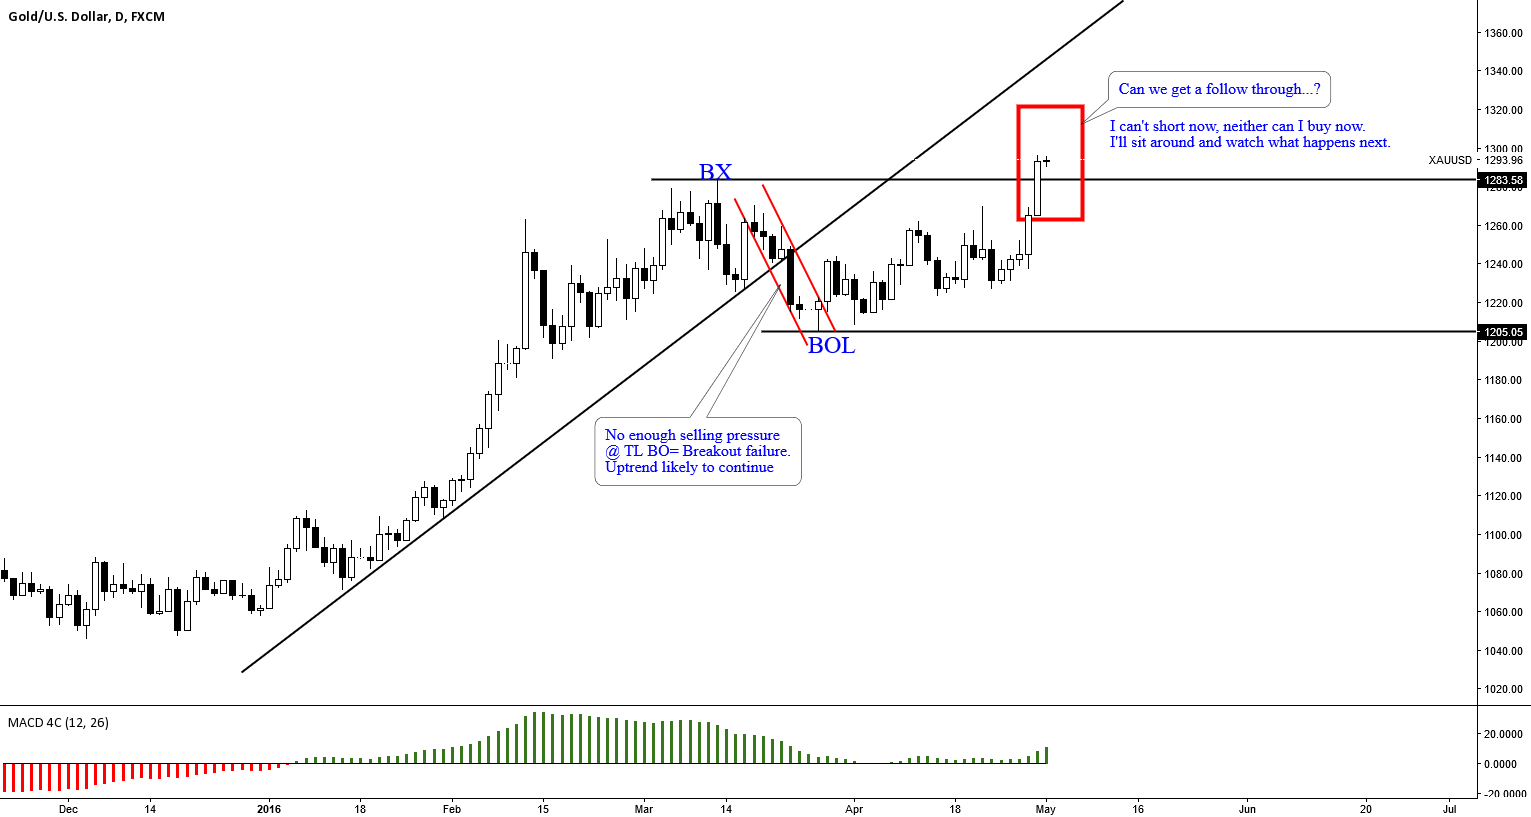 GOLD: STUDYING GOLD PRICE ACTION